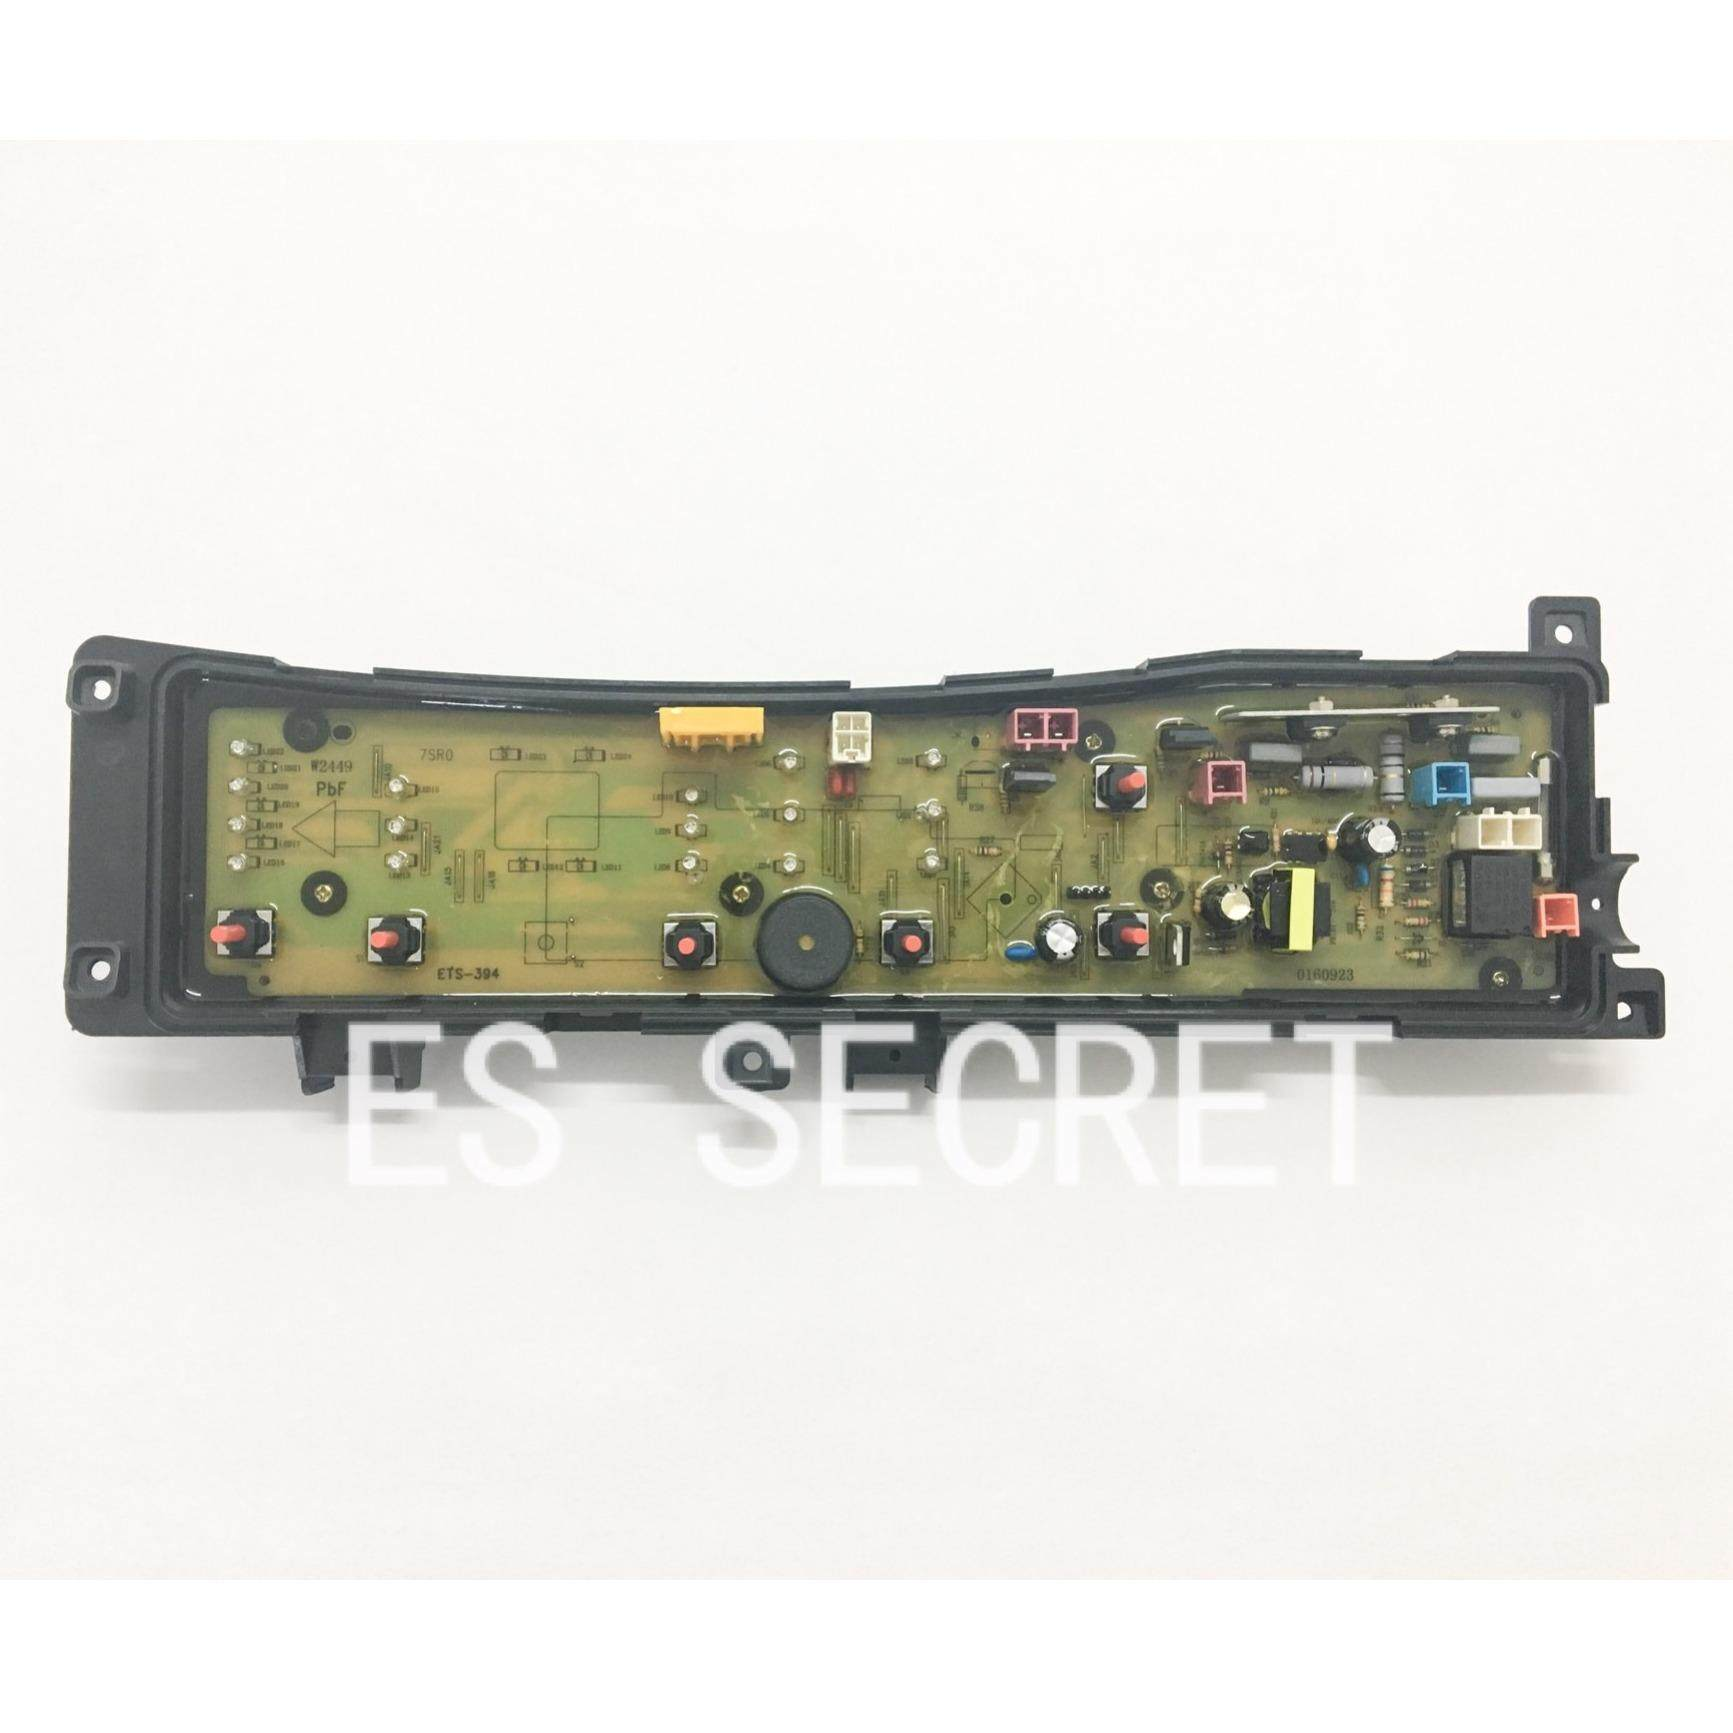 Panasonic Washing Machine Pcb Board